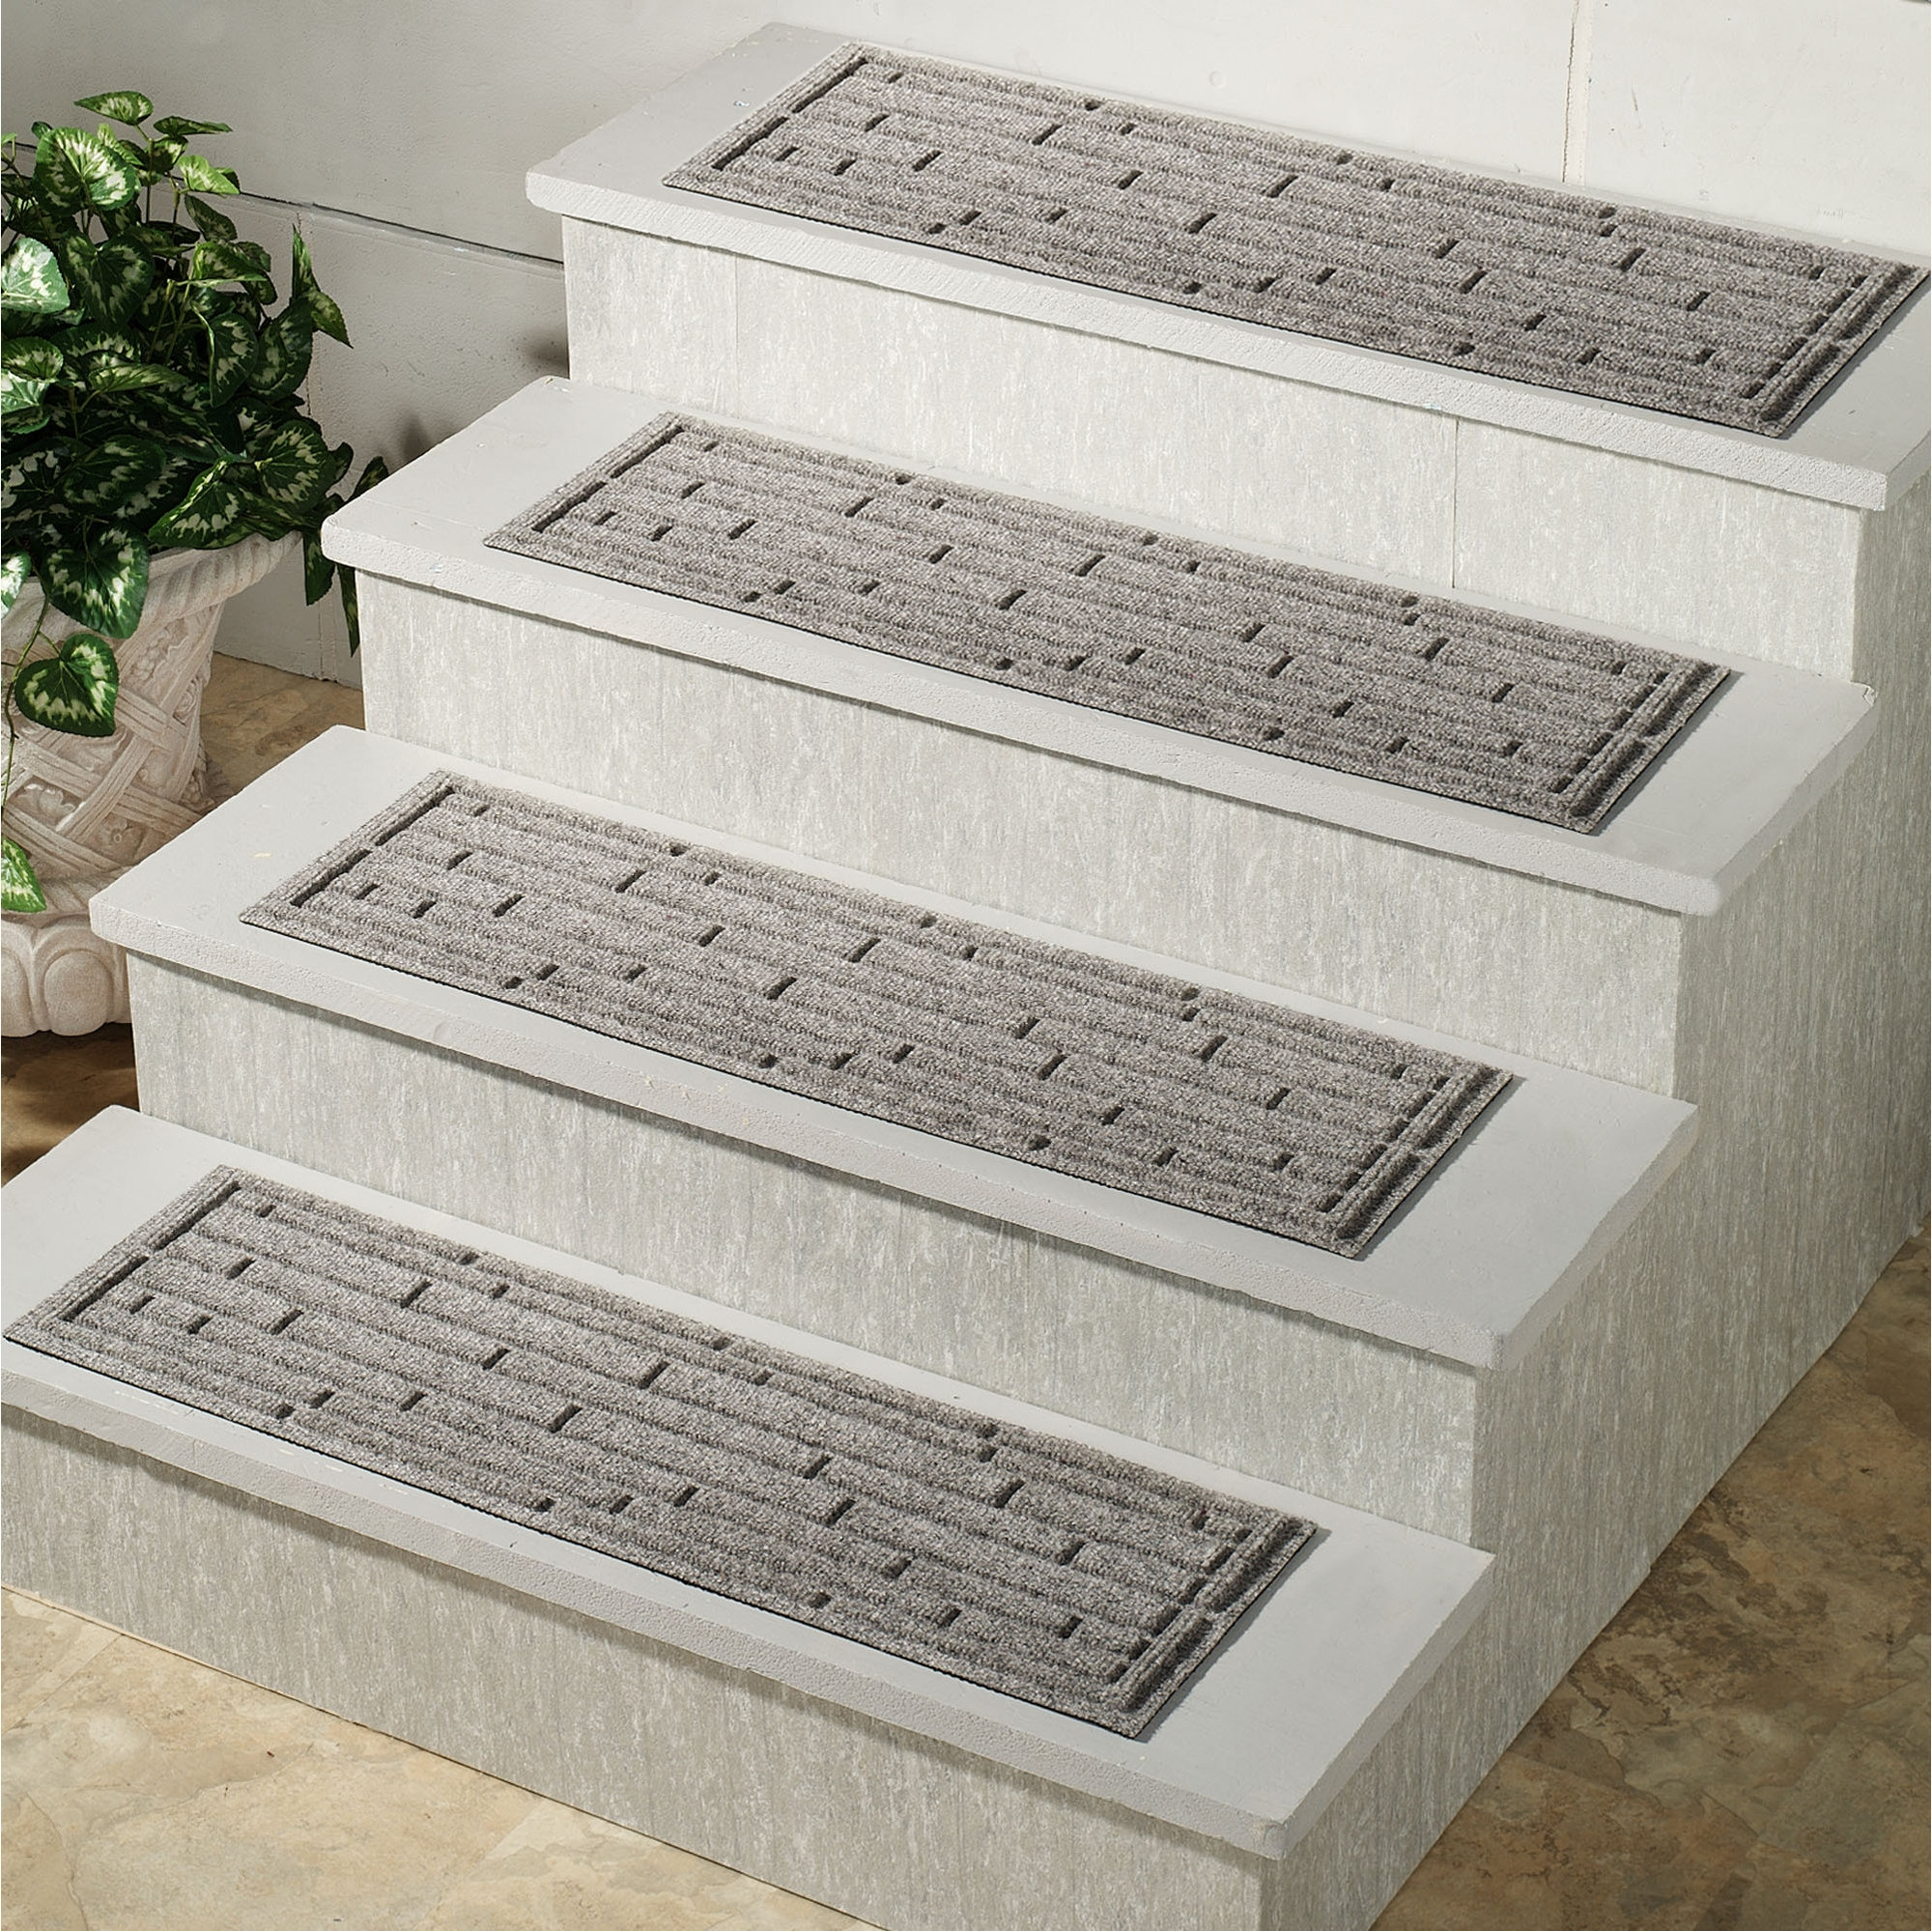 Carpet Decorative Stair Covers Fashionable Decorative Stair Regarding Carpet Stair Pads (#4 of 20)